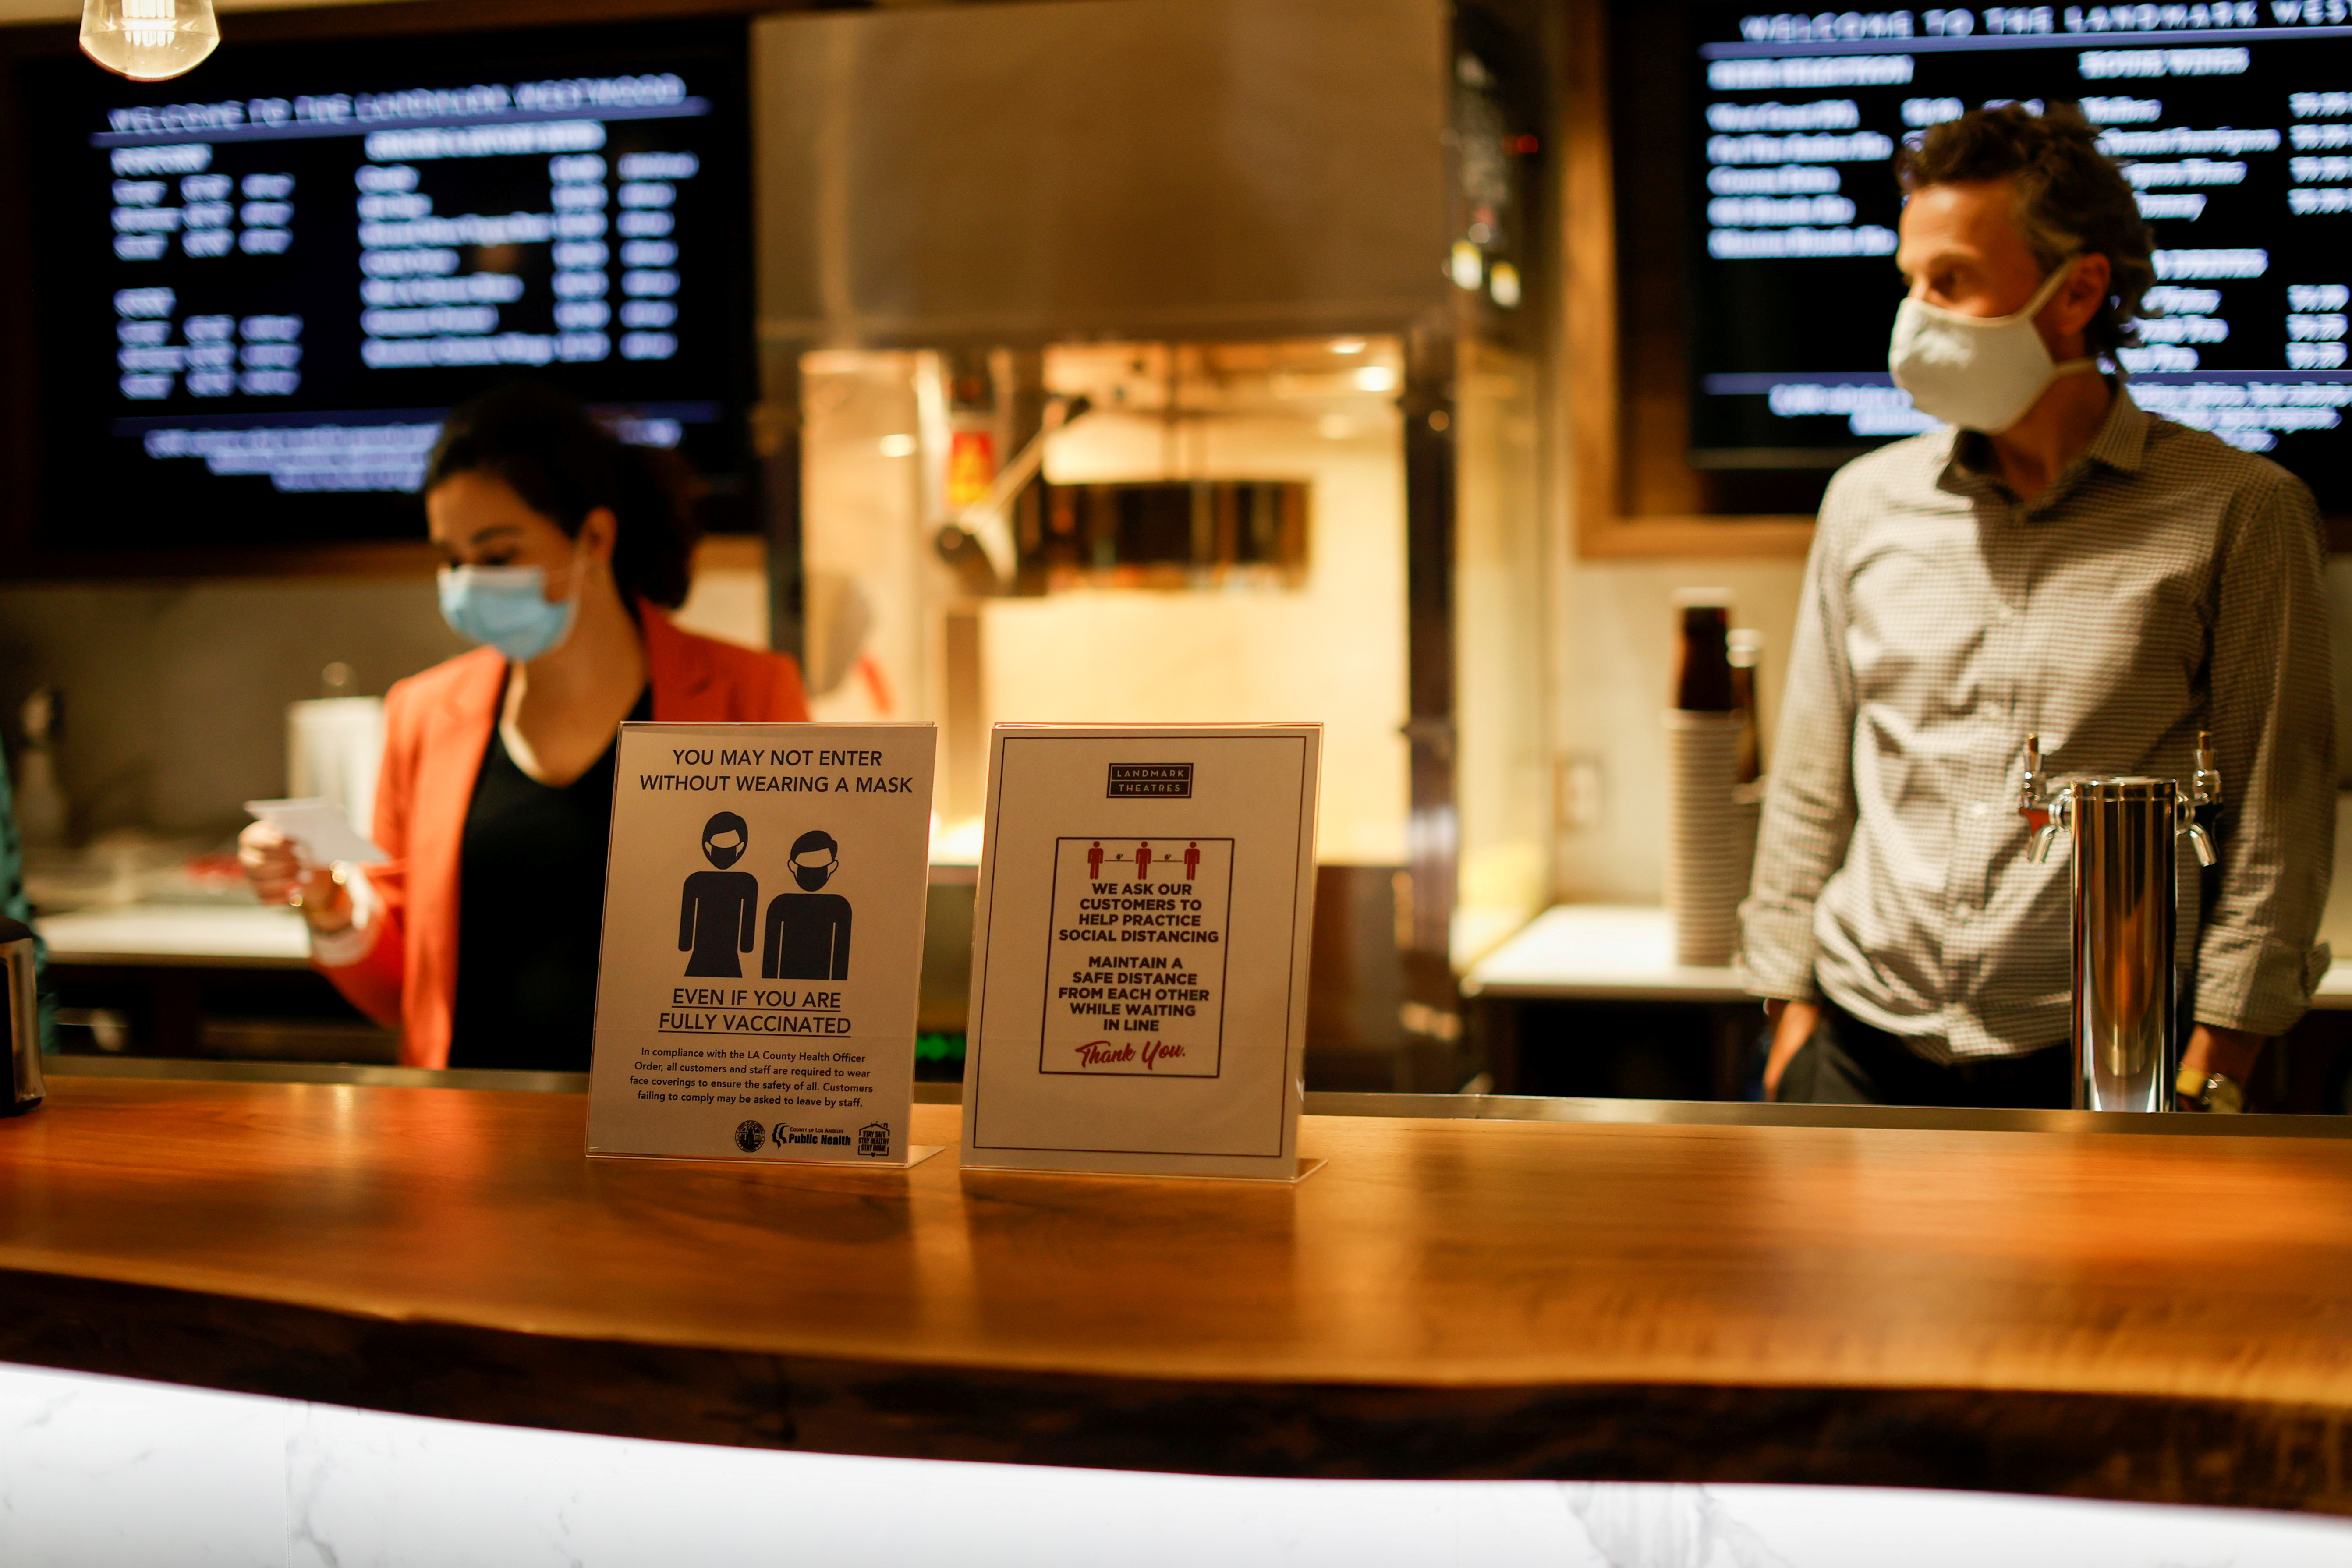 Signs advising about masks and social distancing are pictured by concessions at the Landmark Westwood theatre in Los Angeles, California, U.S., May 14, 2021.  REUTERS/Mario Anzuoni/File Photo